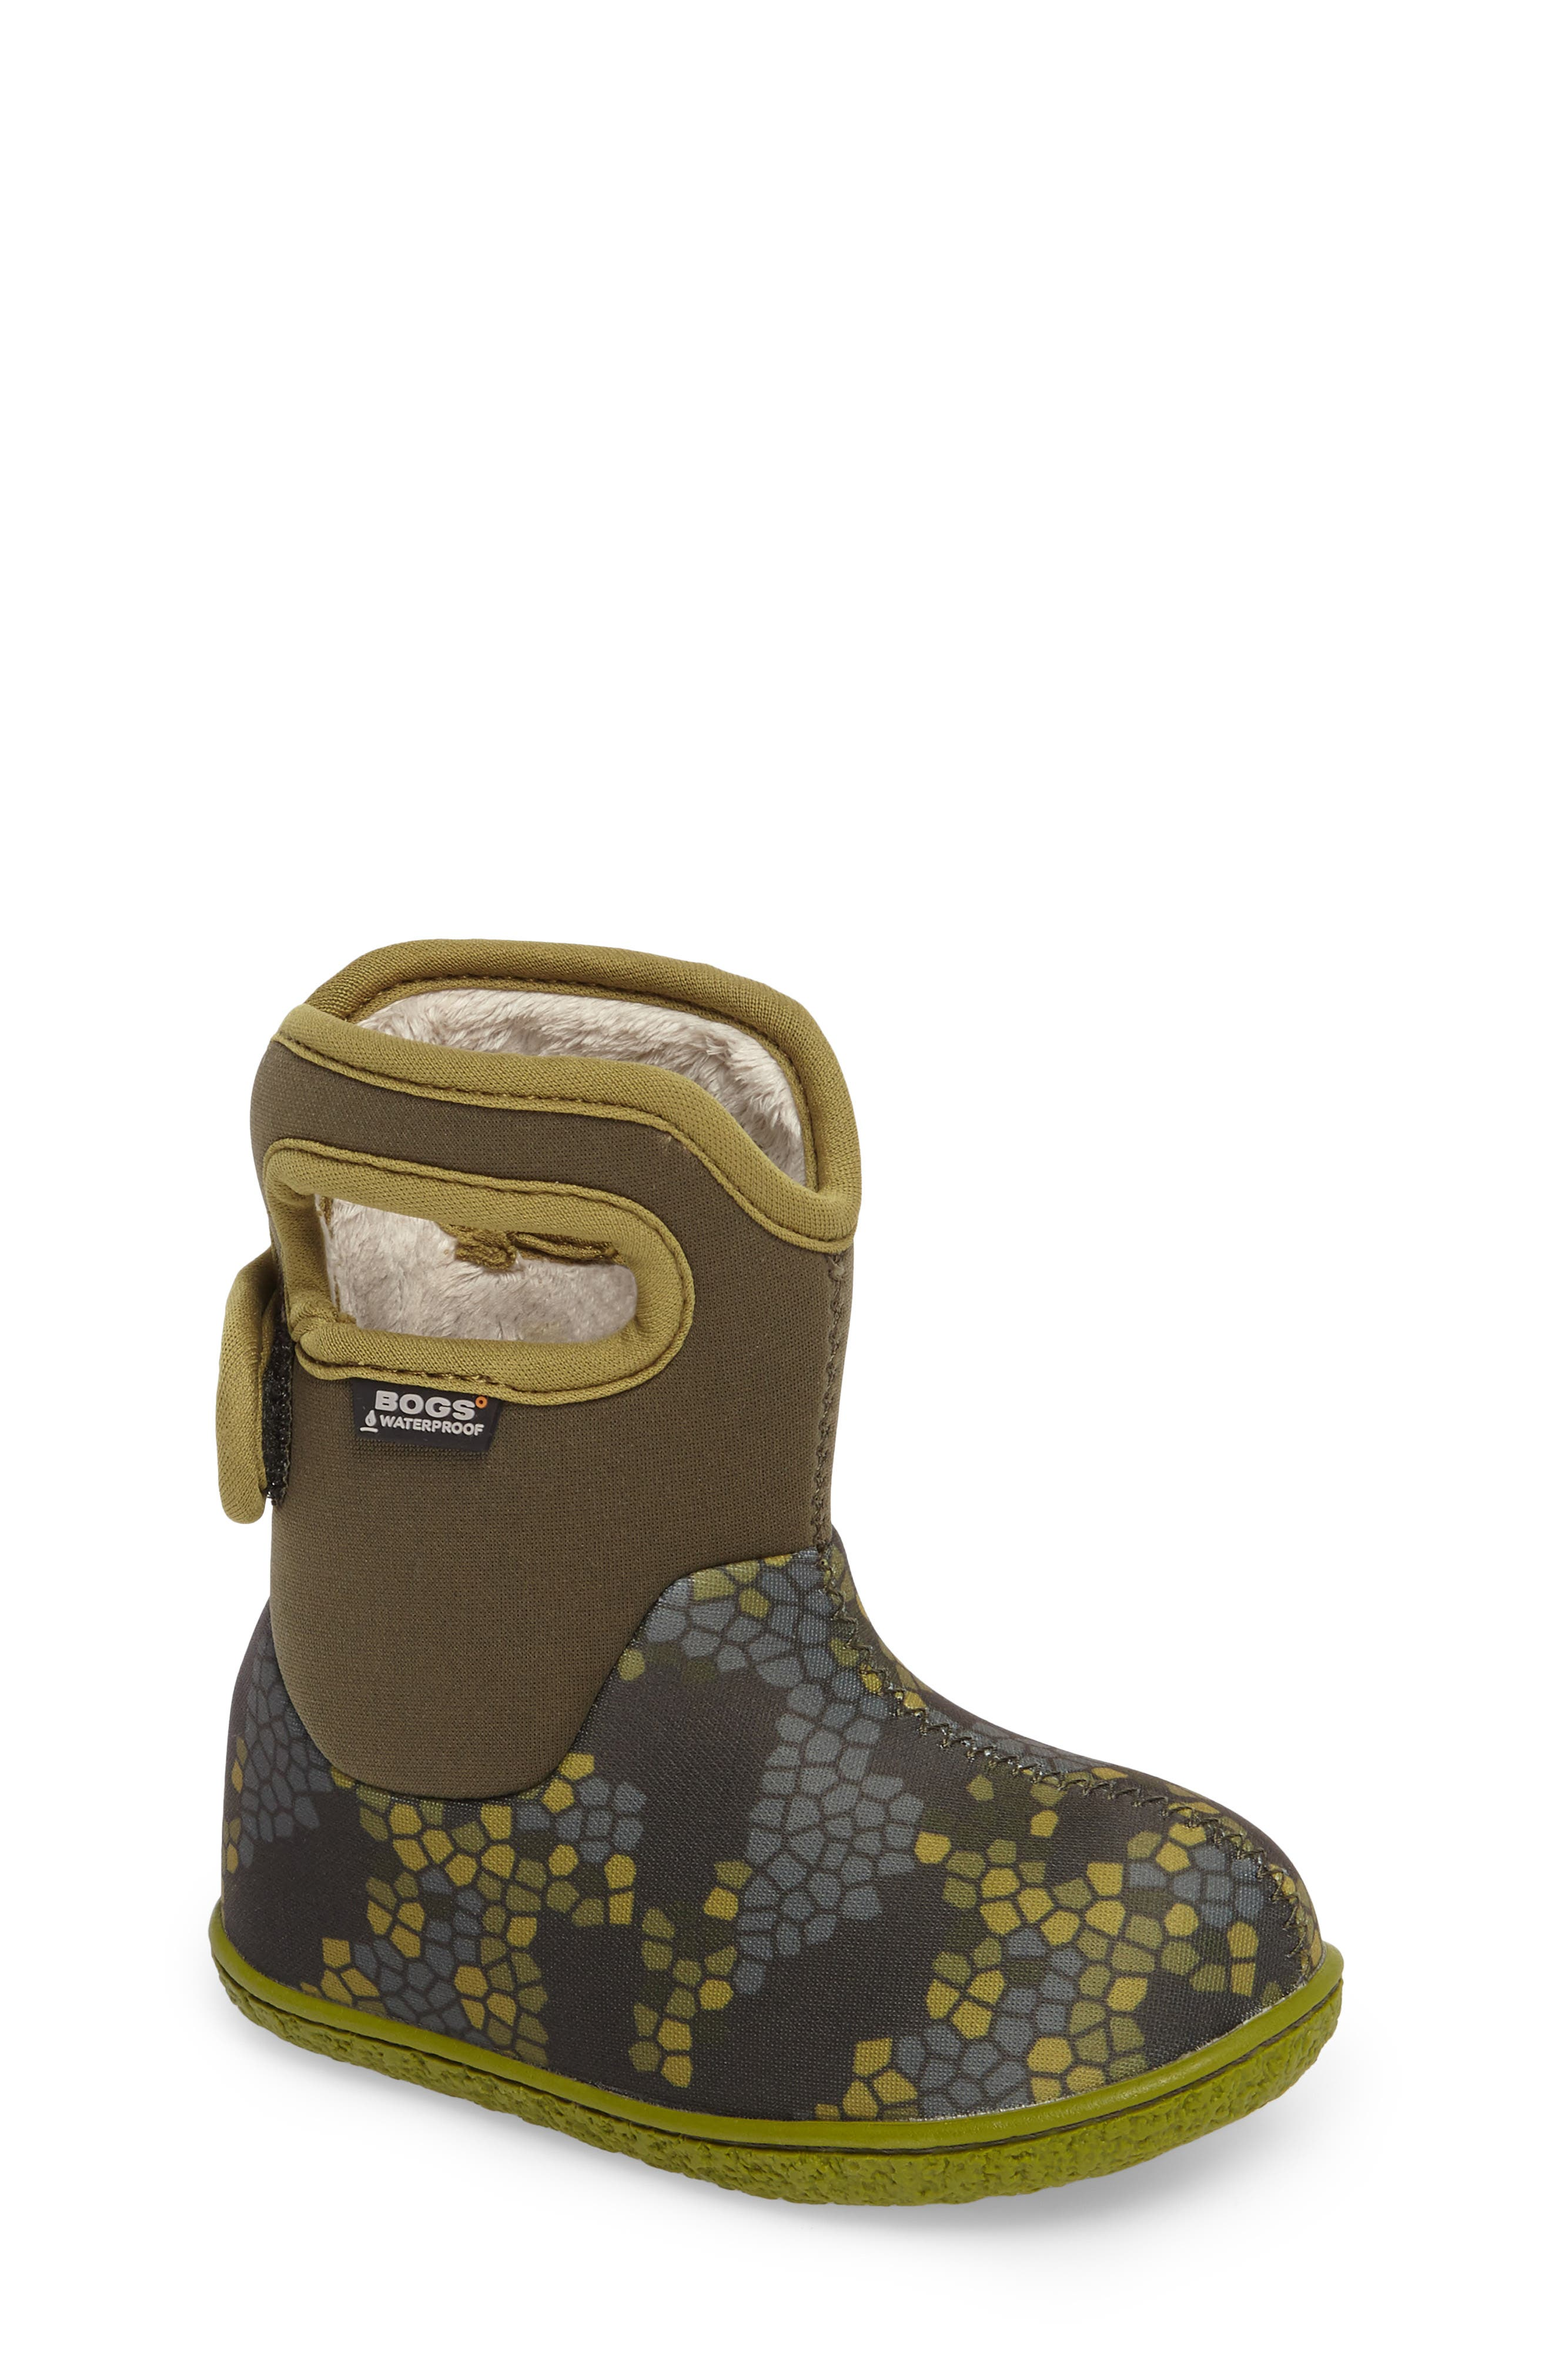 Alternate Image 1 Selected - Bogs Baby Bogs Classic Axel Washable Insulated Waterproof Boot (Baby, Walker & Toddler)